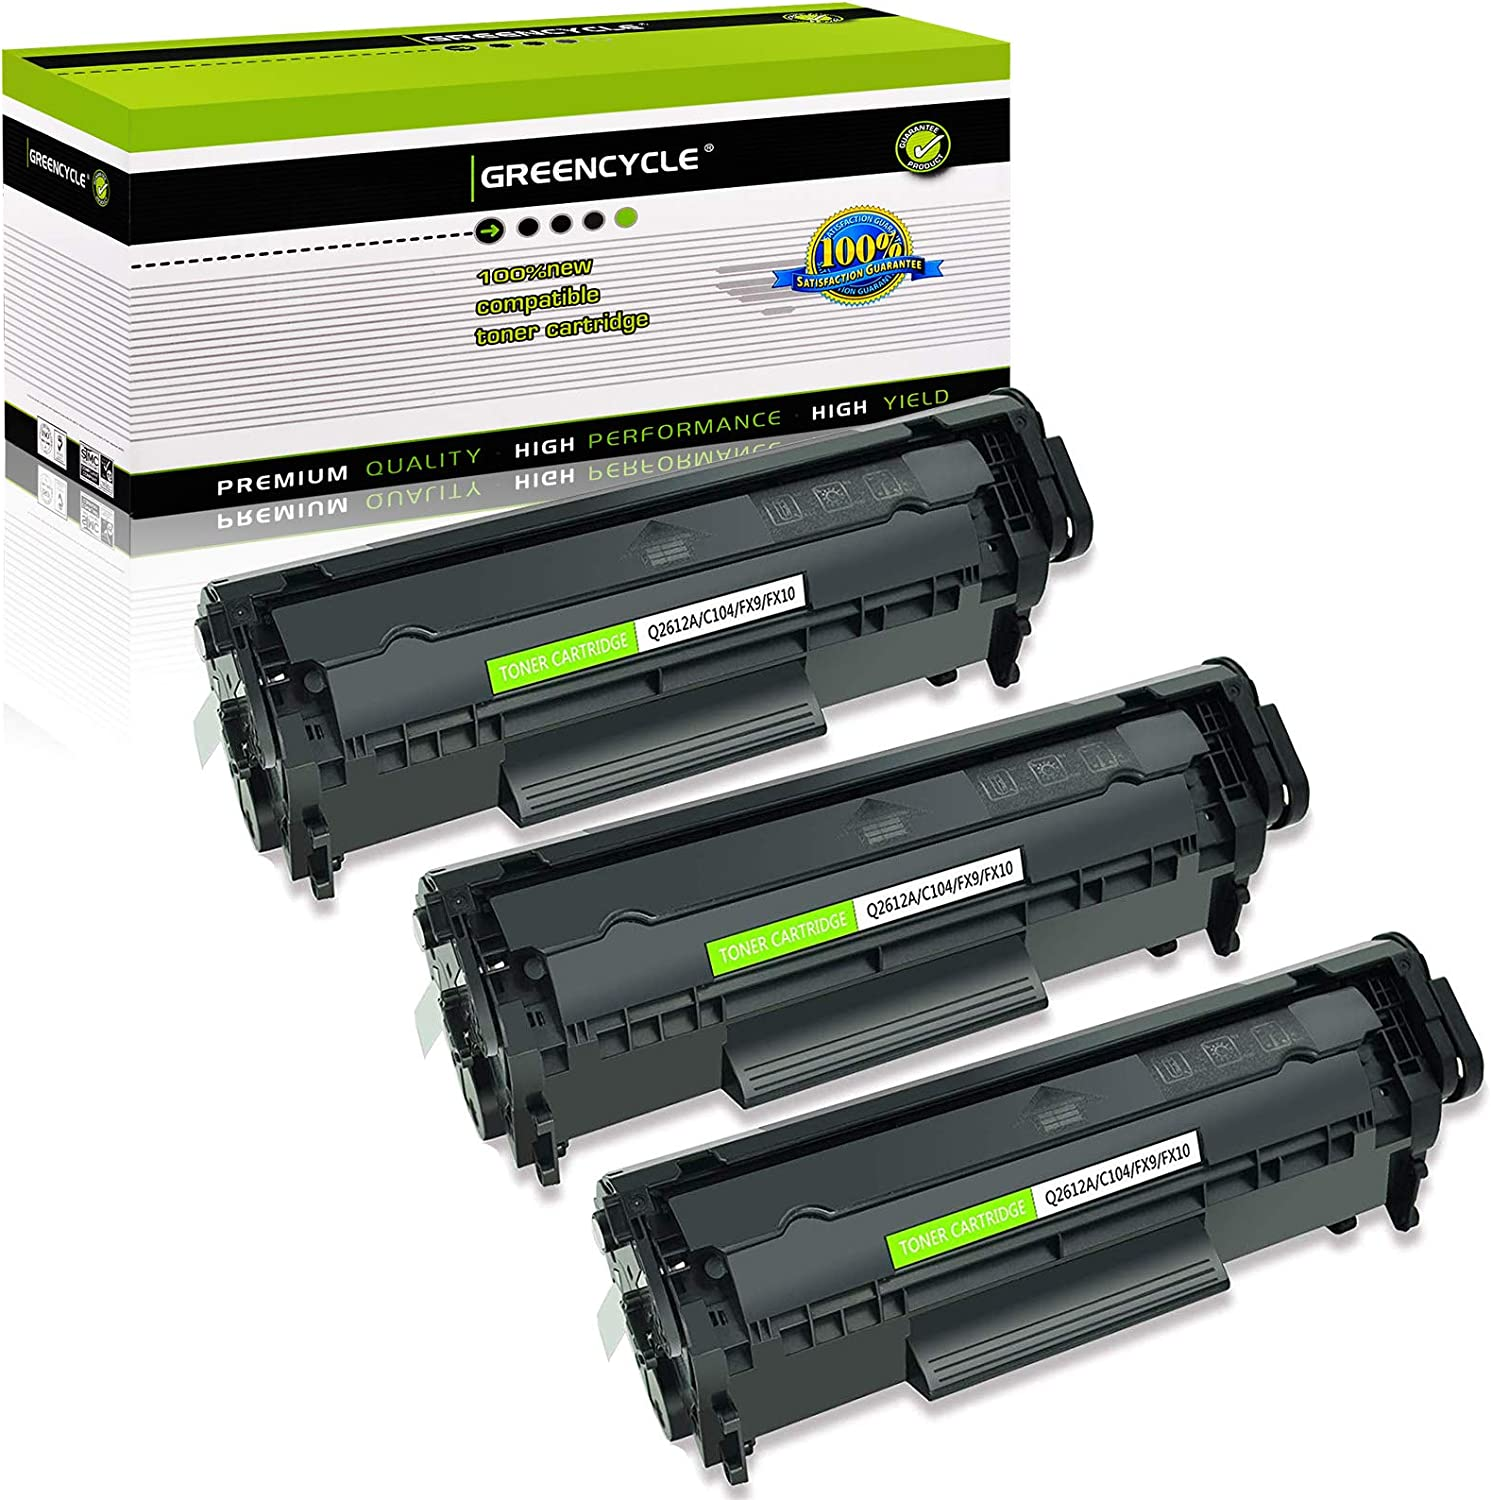 GREENCYCLE 3 PK Toner Cartridge Replacement Compatible for HP 12A Q2612A (Black) Laserjet 1010 1012 1018 1020 Printer